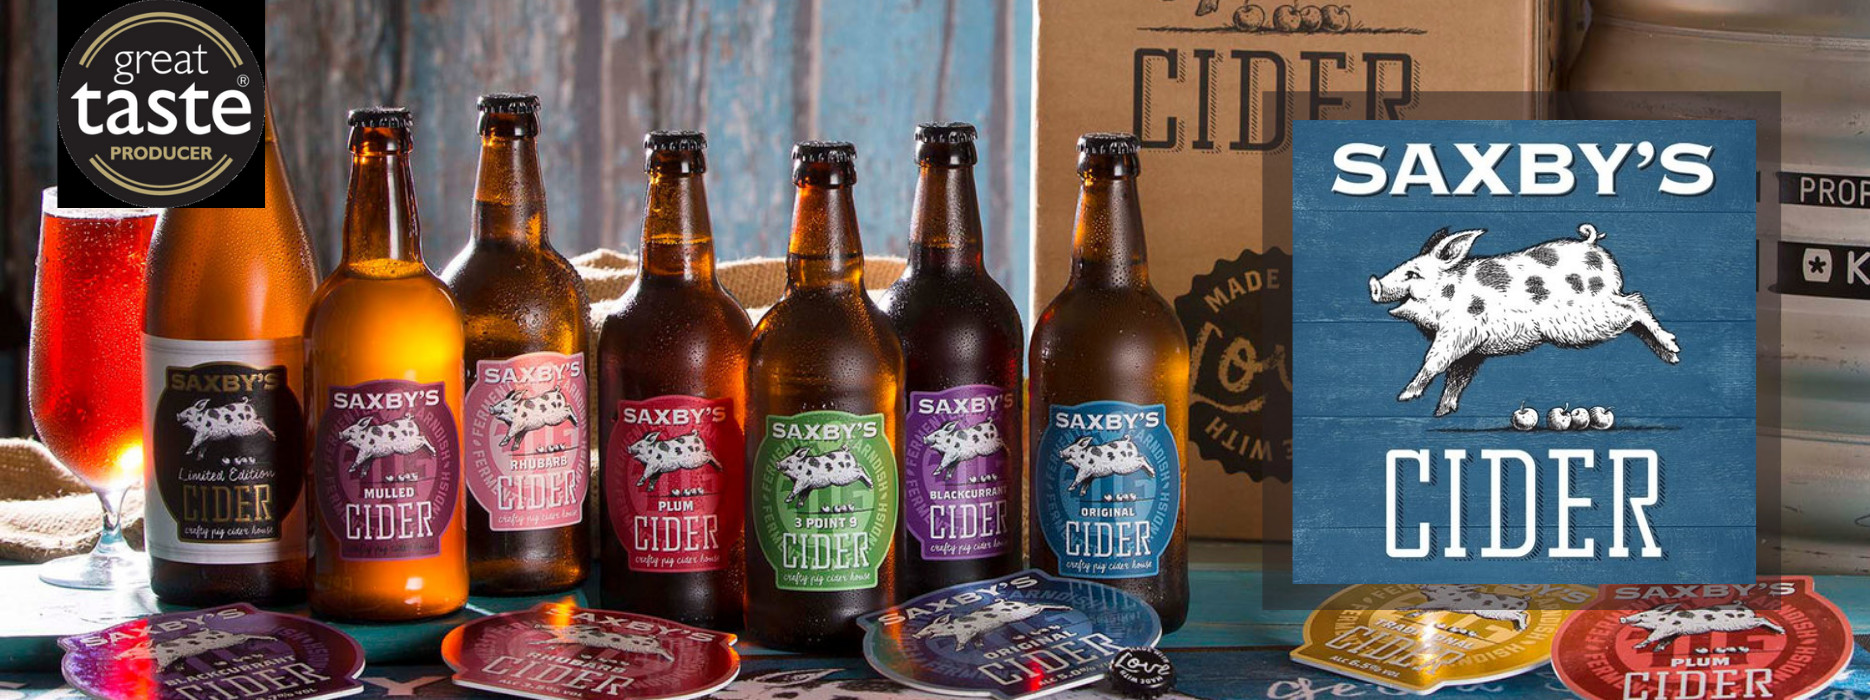 Saxby's Cider case of 12